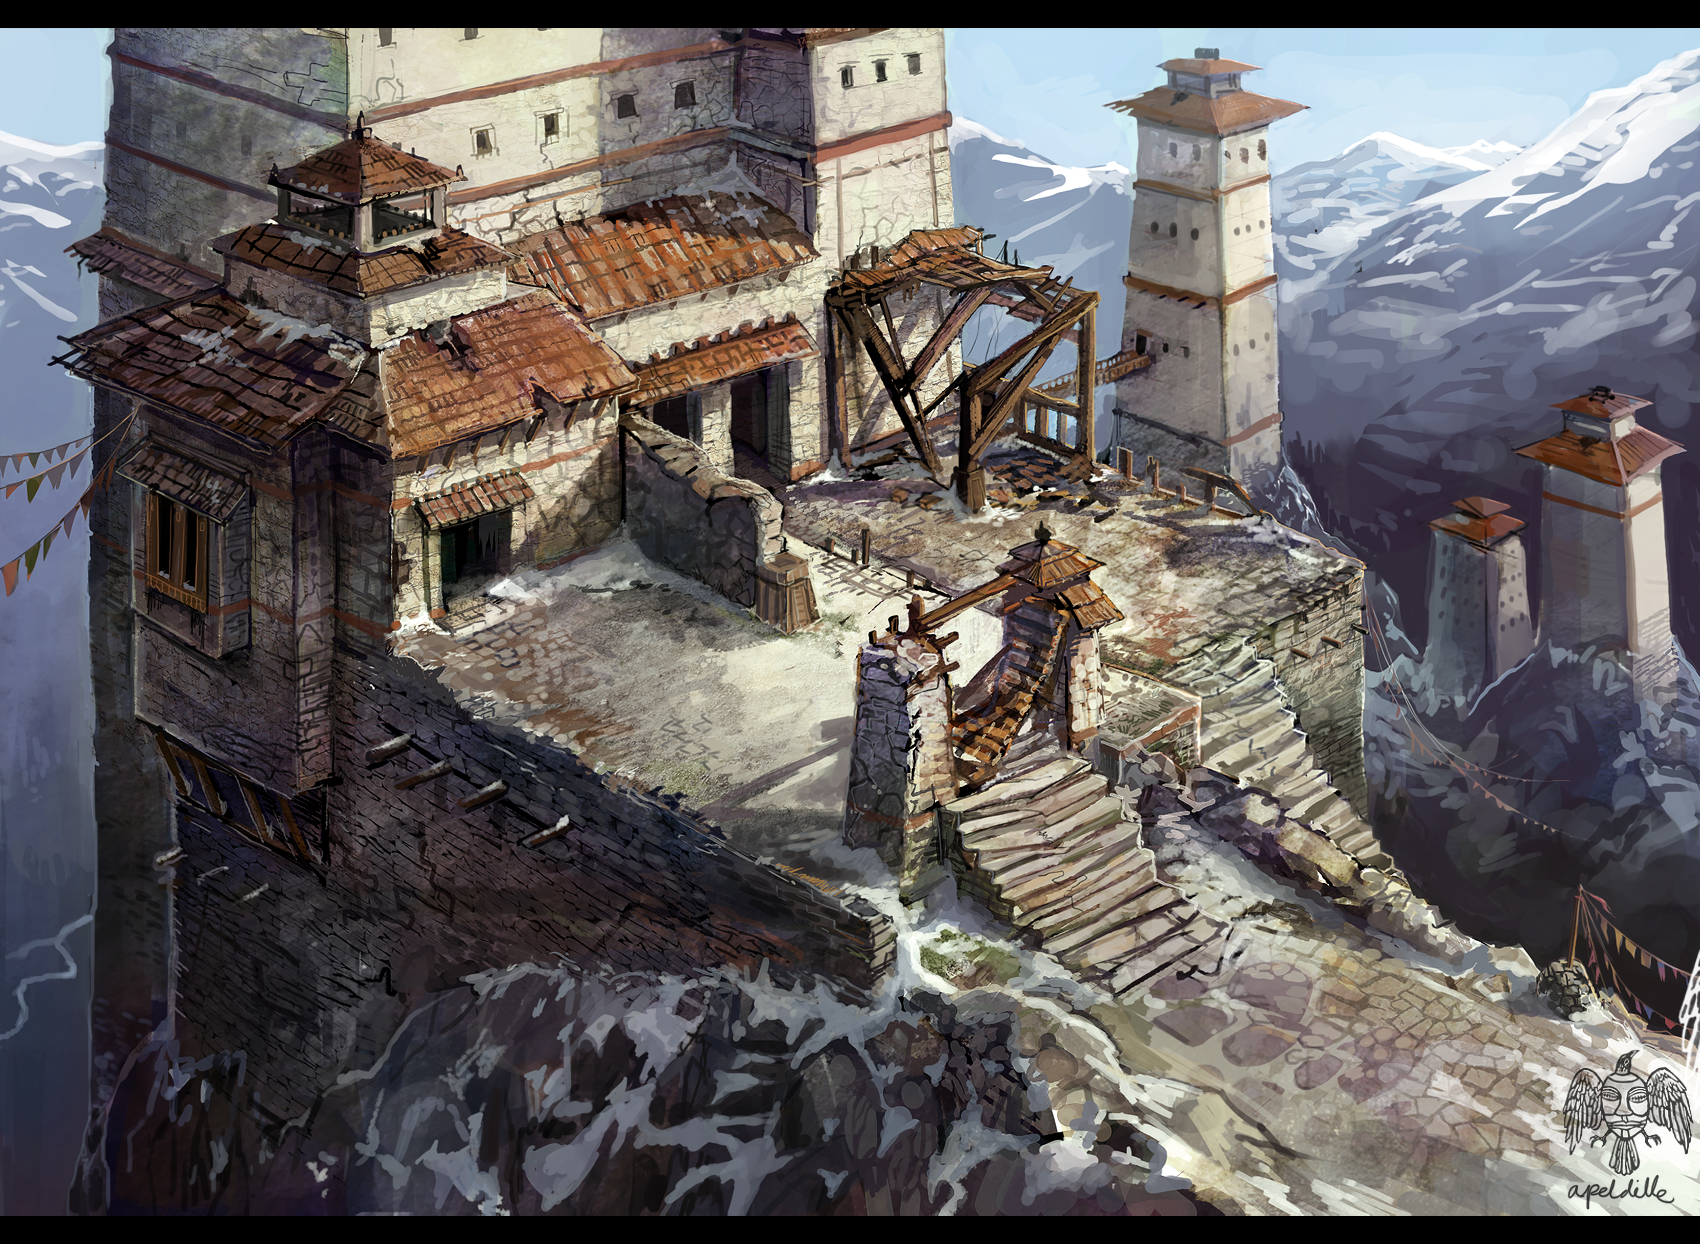 Minas cirdili this large keep has reinforced stone walls and a